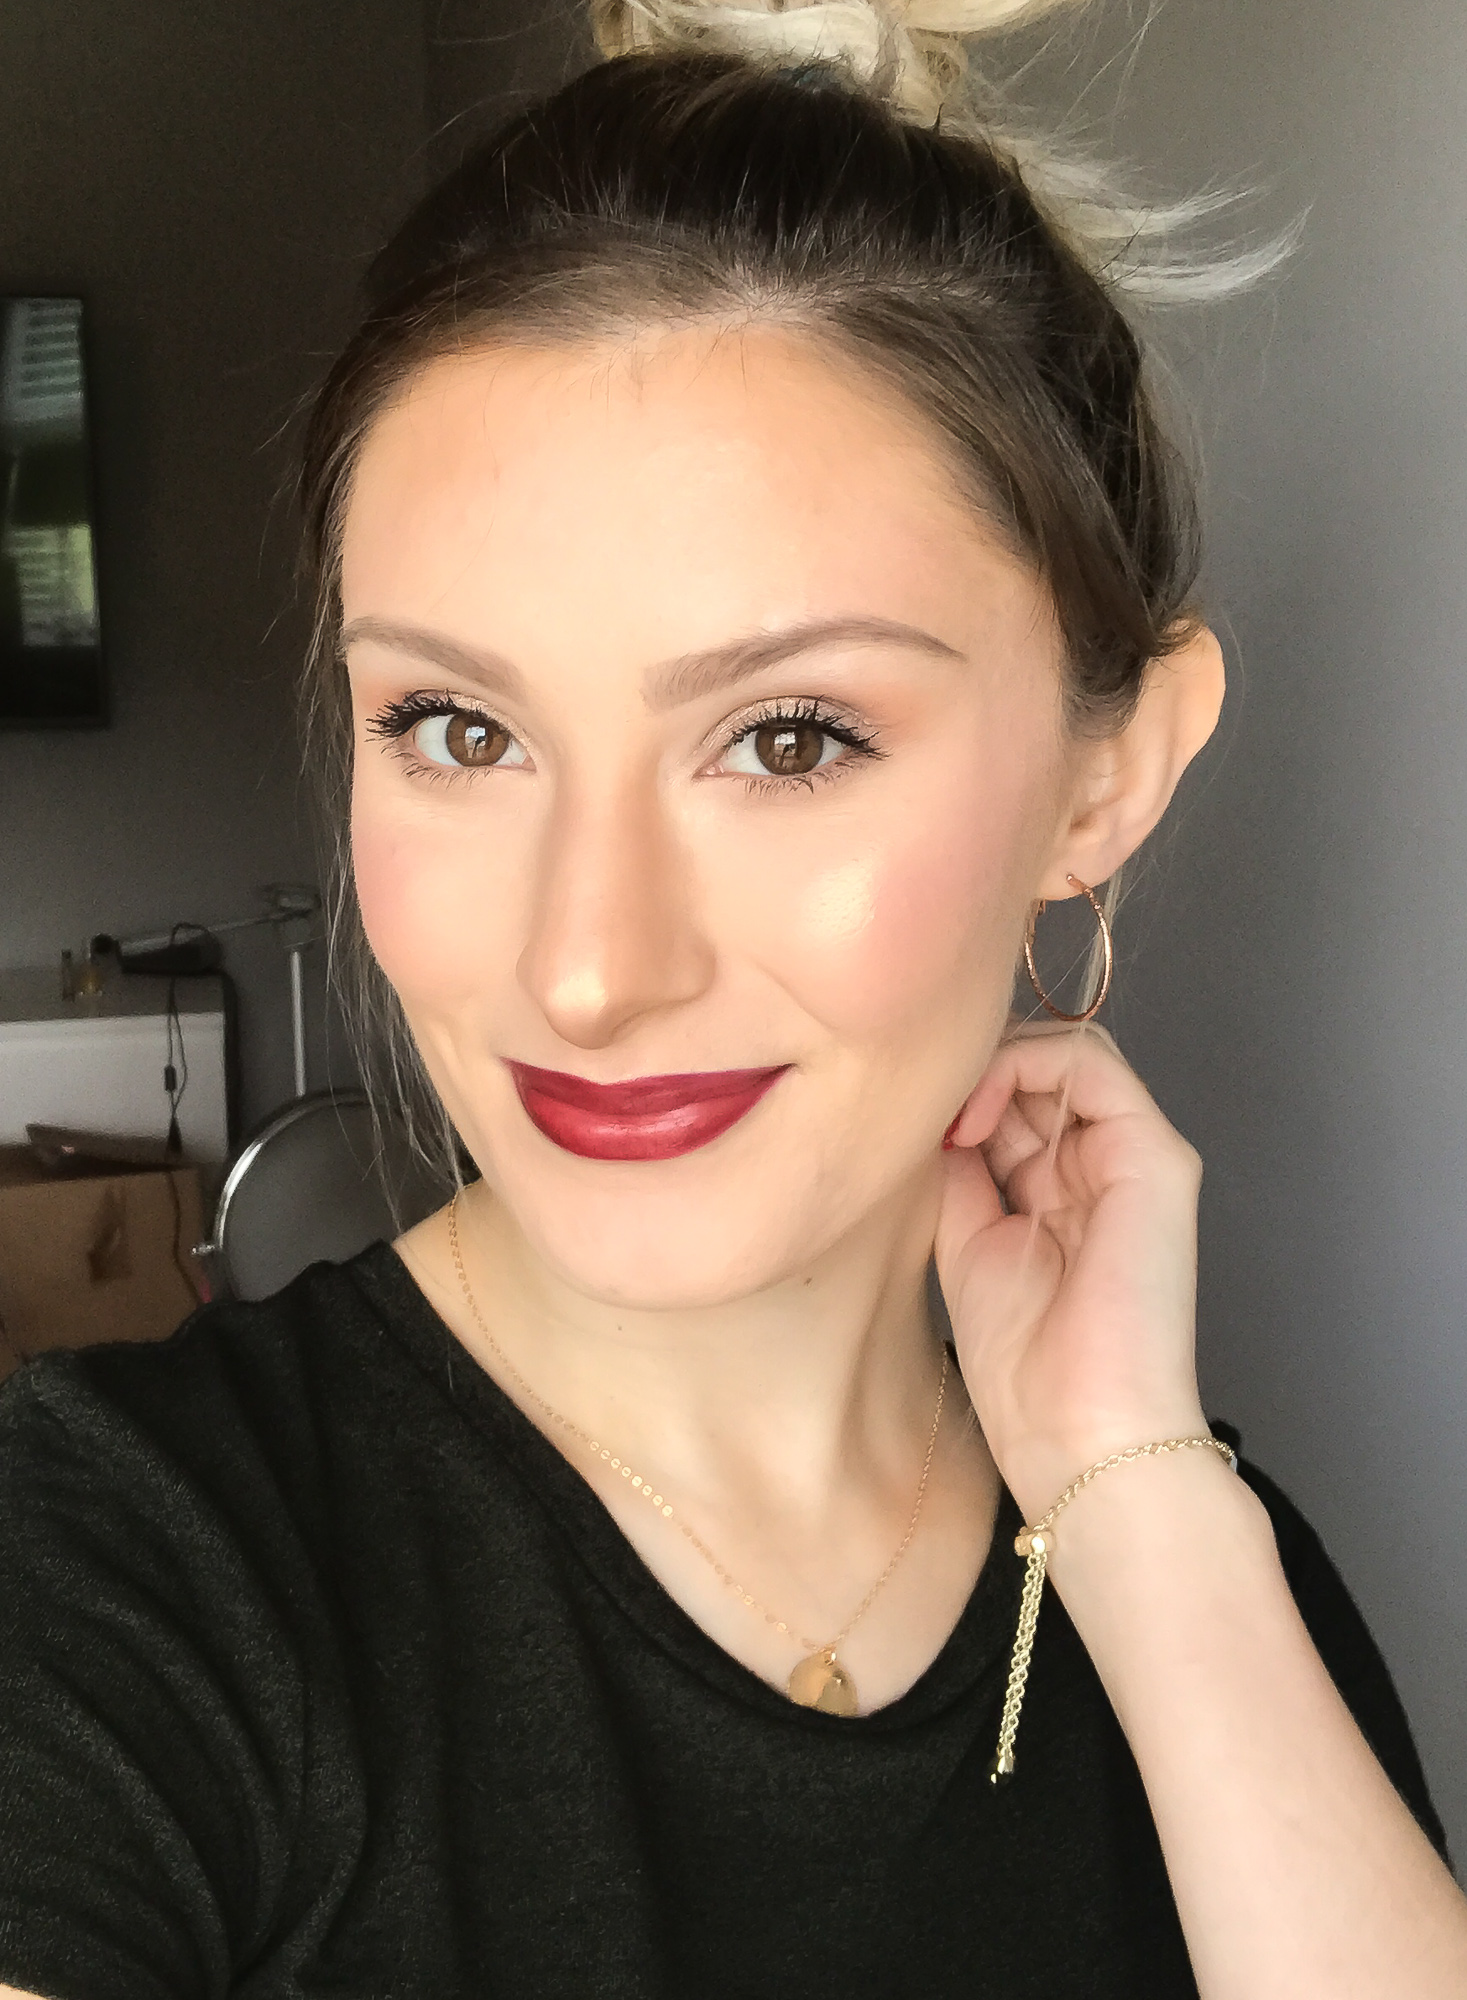 Lifestyle, fashion, and beauty blogger and vlogger Jessica Linn from Linn Style collaborating with SummerReign Cosmetics, a local Durham North Carolina lipstick company started by Ashley Summerville using all natural organic ingredients.